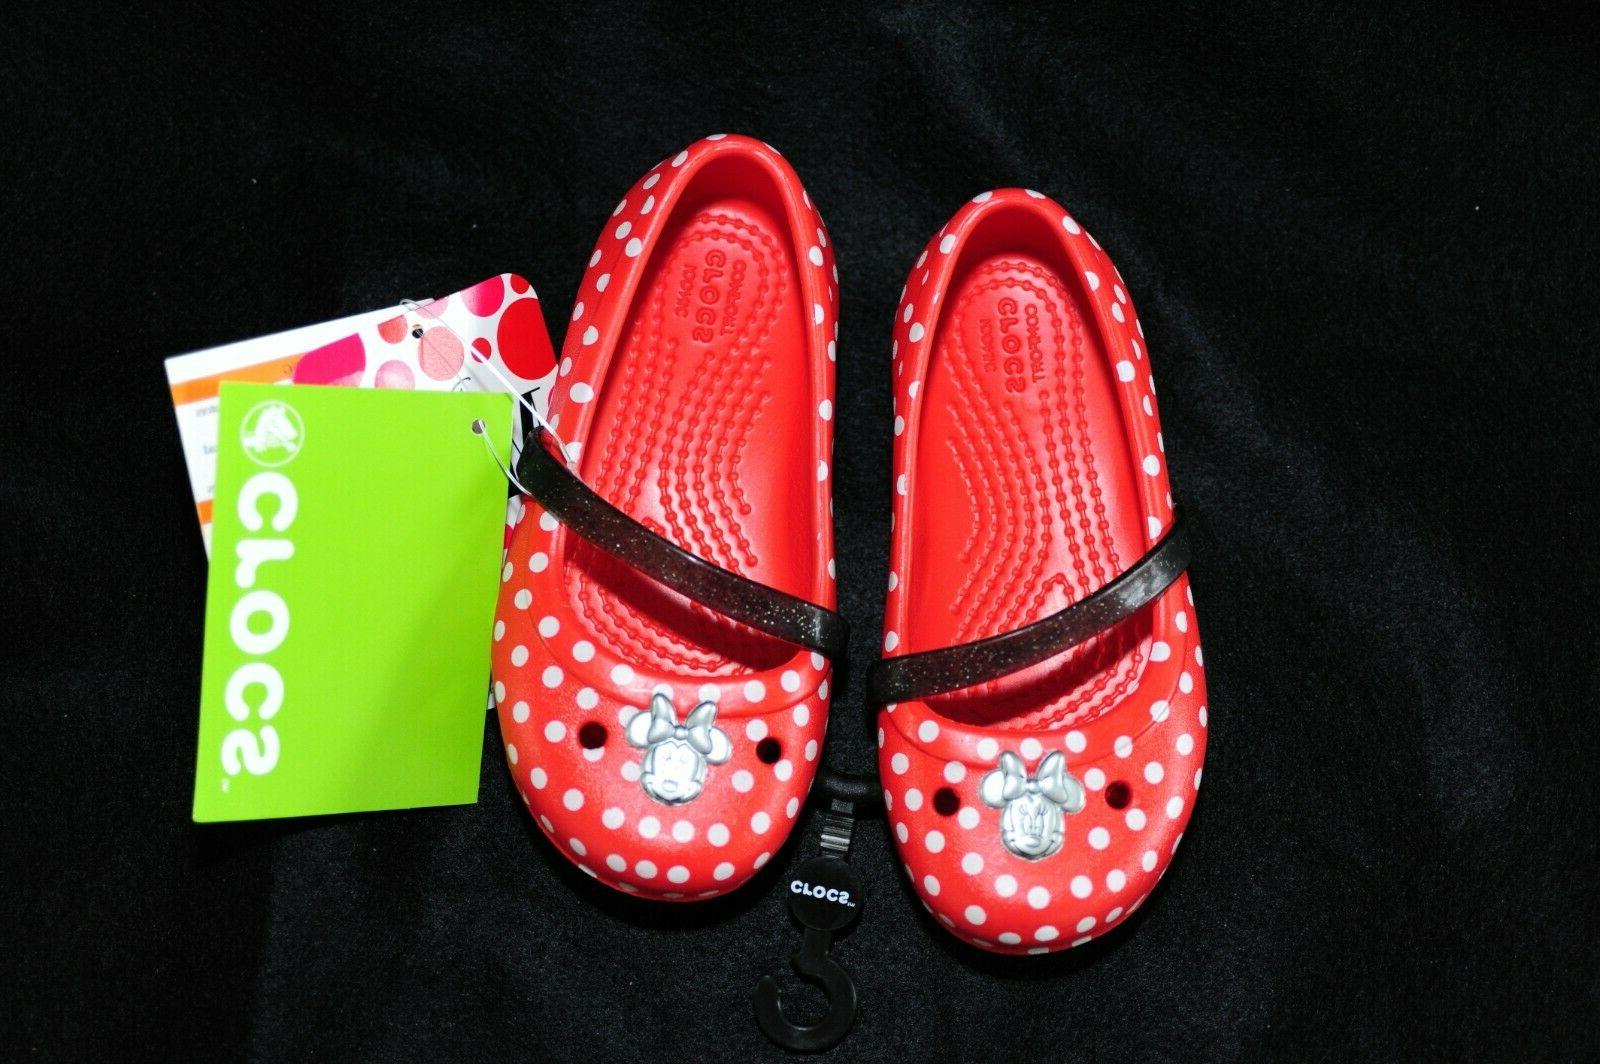 Crocs Minnie Polka Dot Size 8 Brand Water Shoes